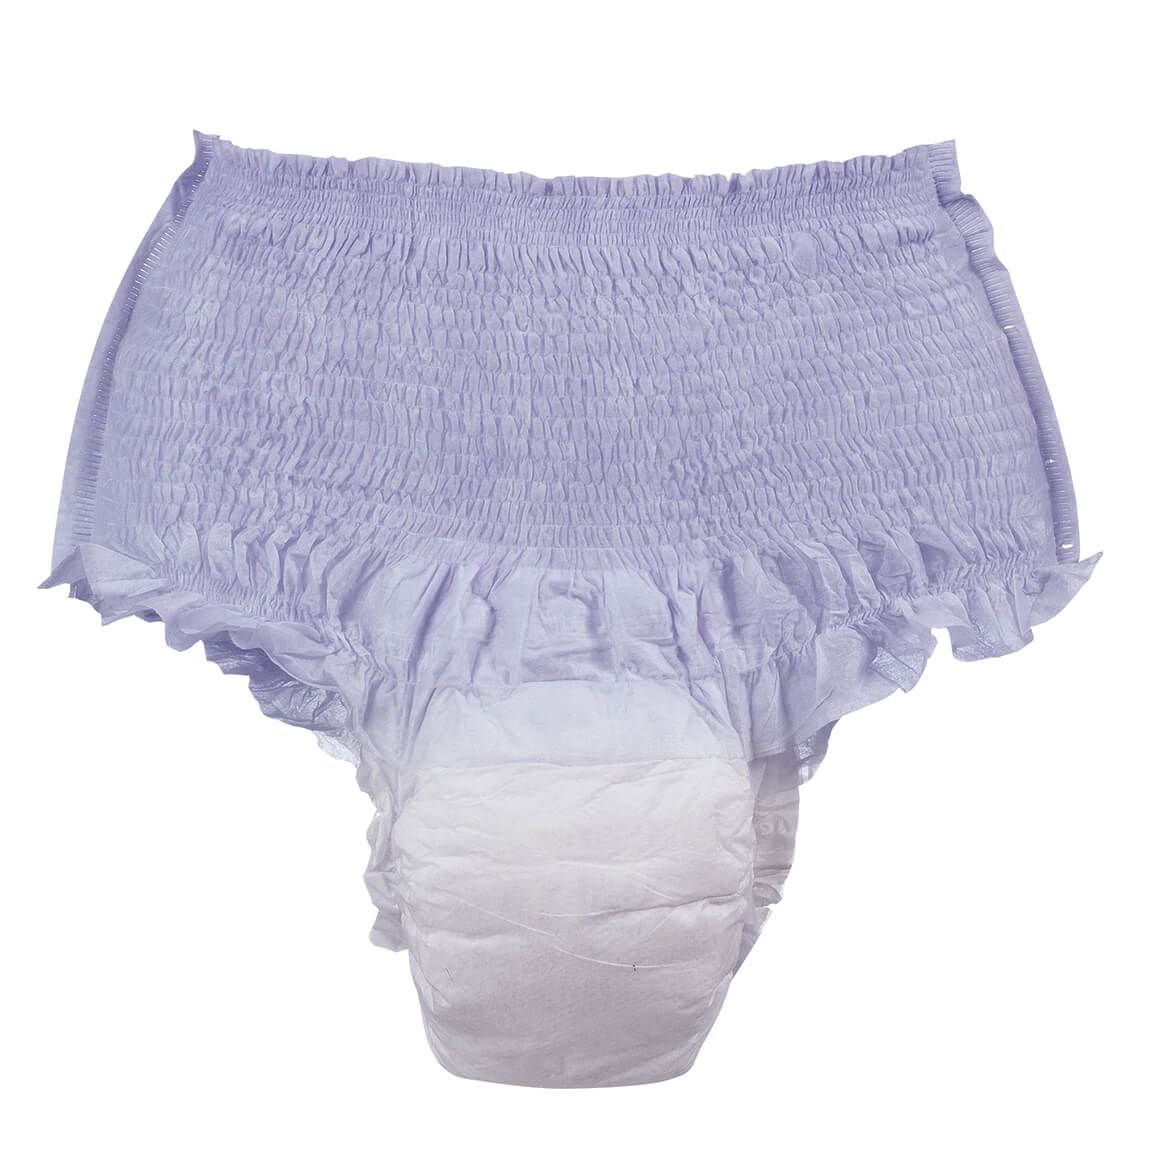 Female Protective Underwear, Package-355858